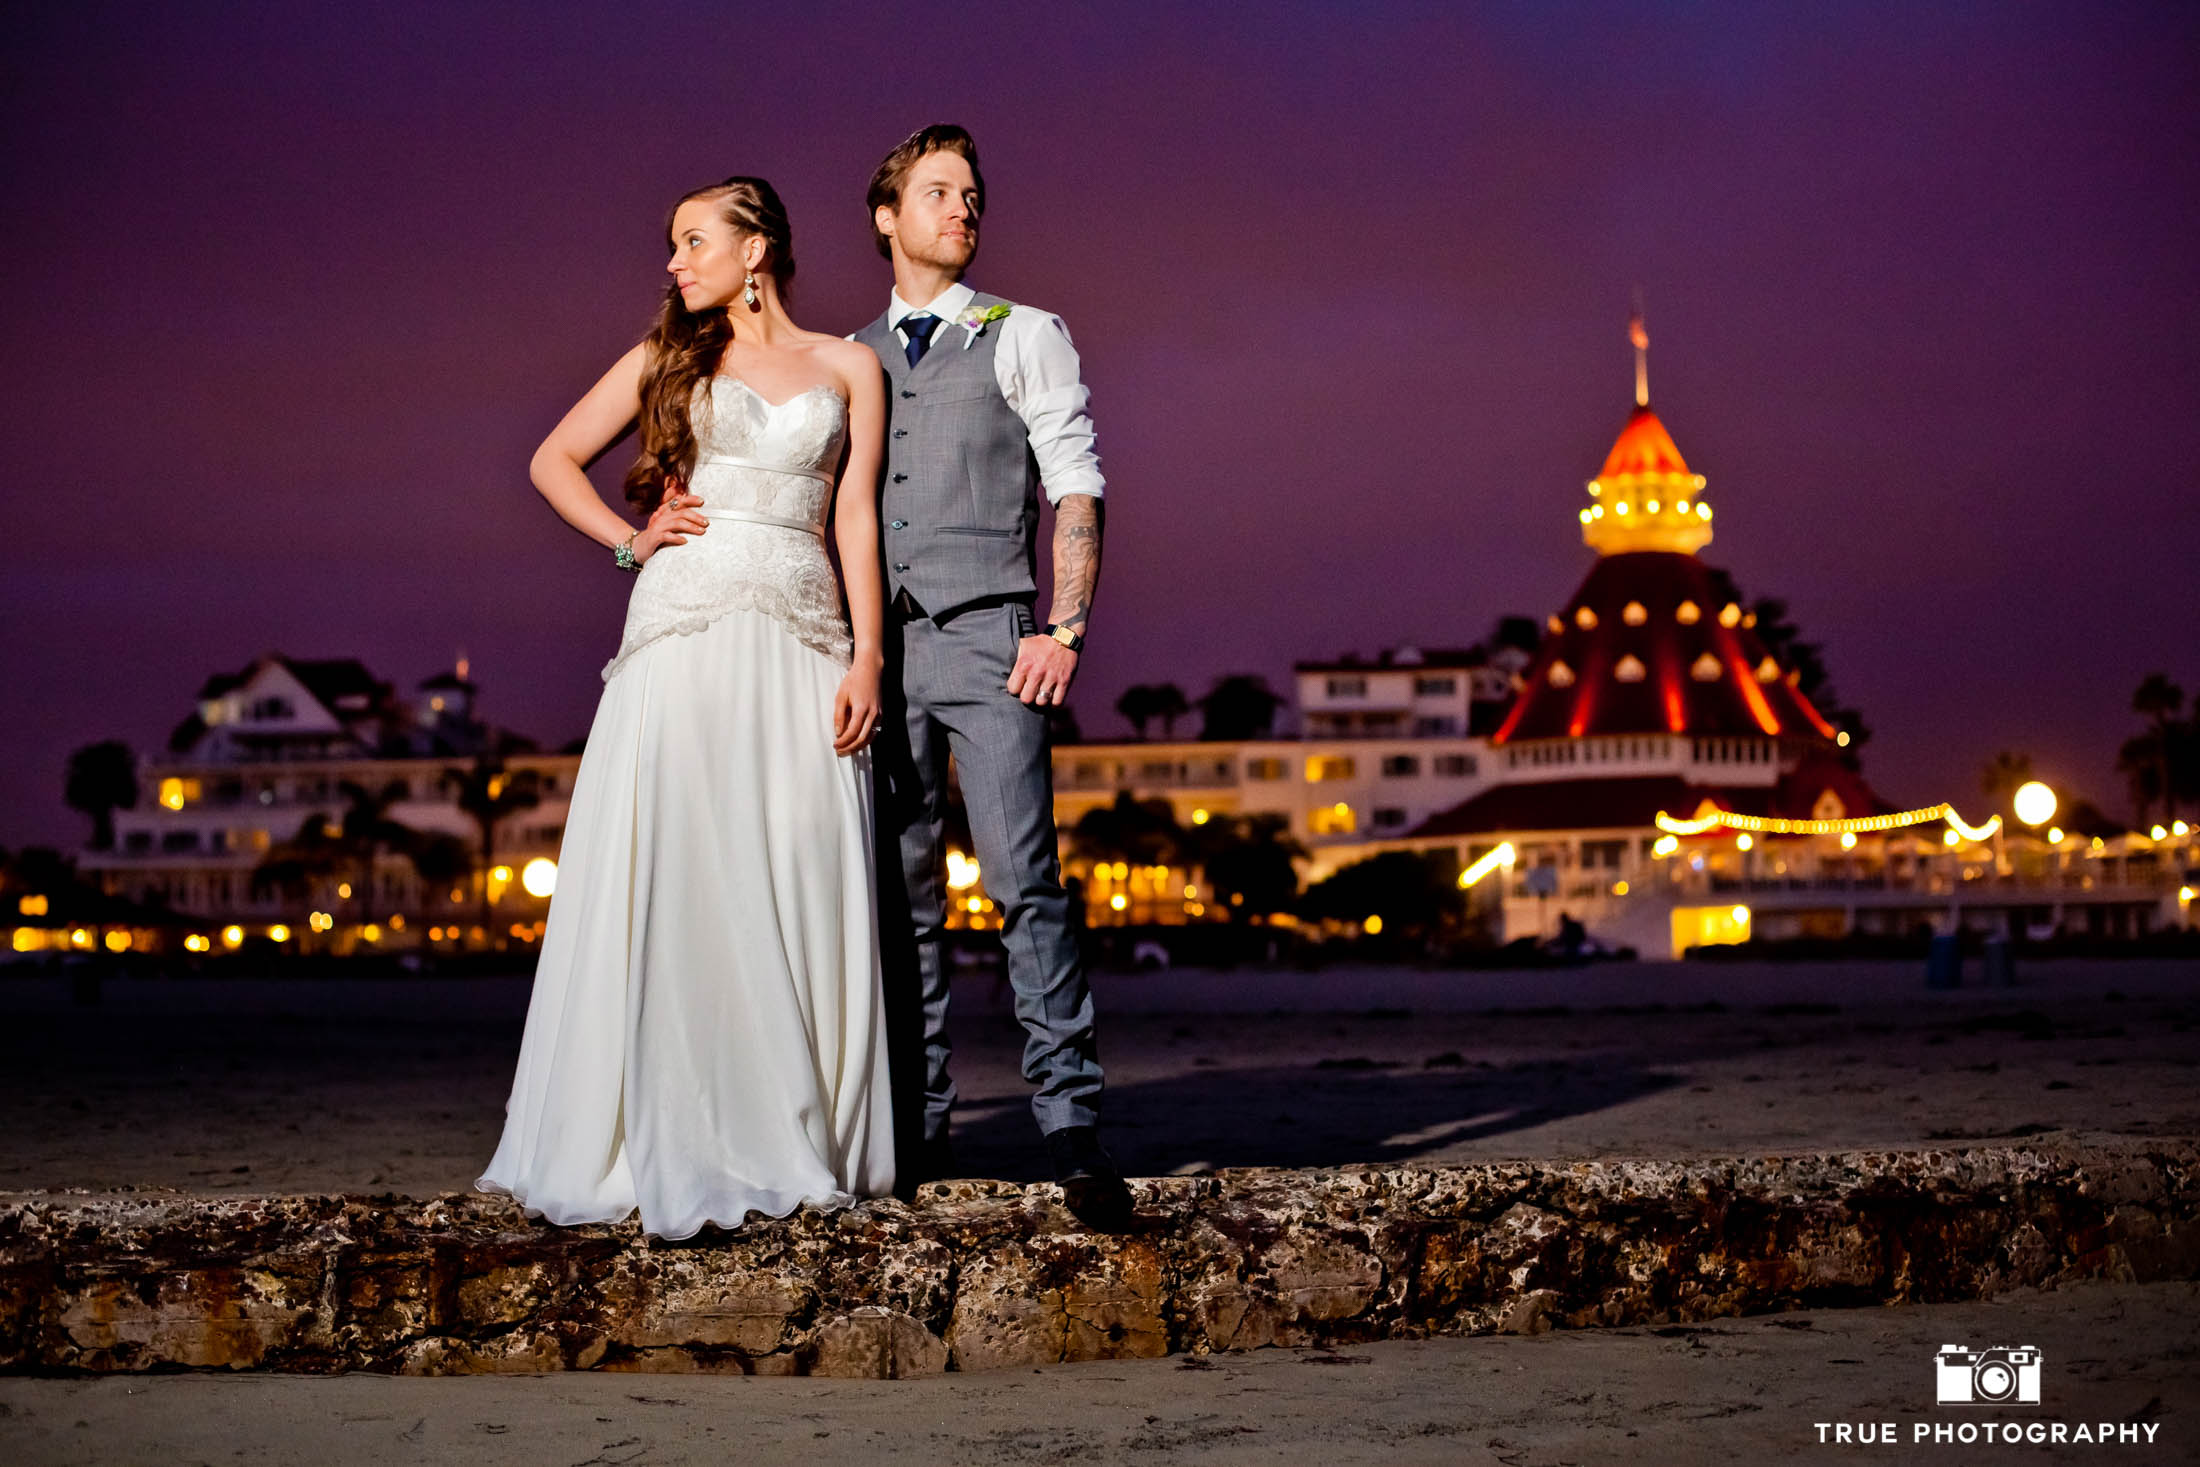 Coronado, California Hotel Del newlyweds night shot with purple sky